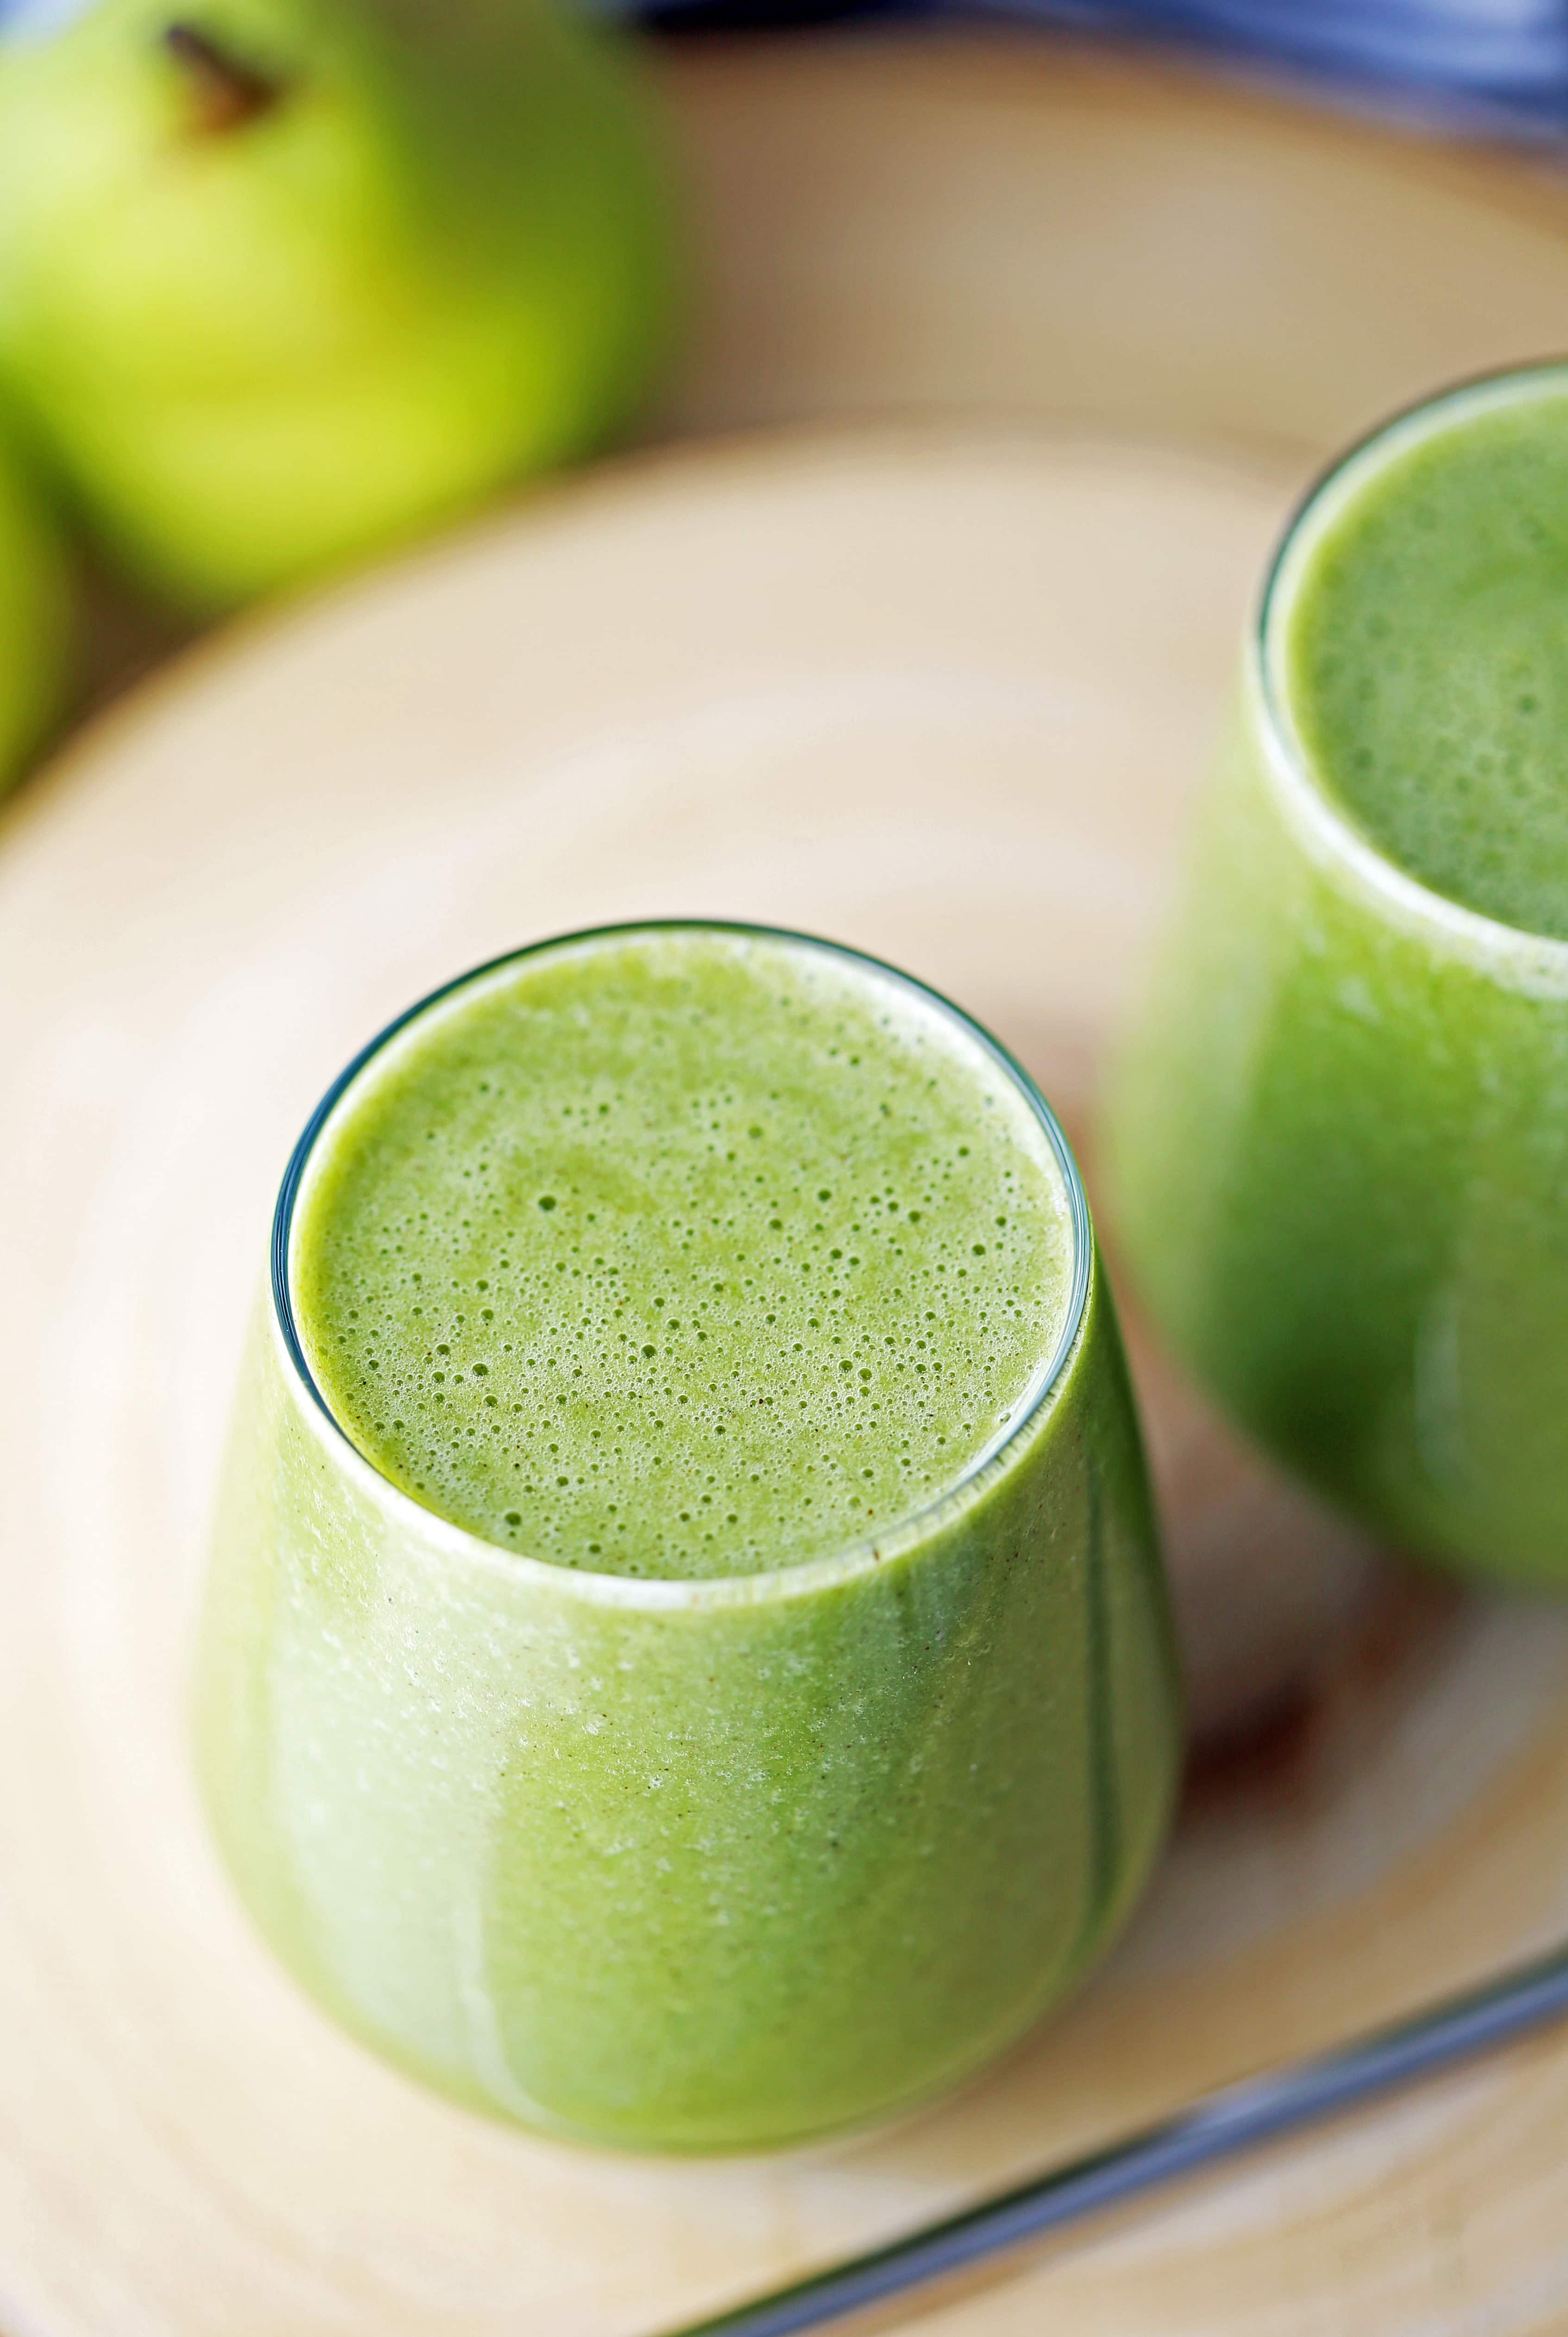 A close-up top view of a full glass of green smoothie made with pears, spinach, ground cinnamon, and almond milk.